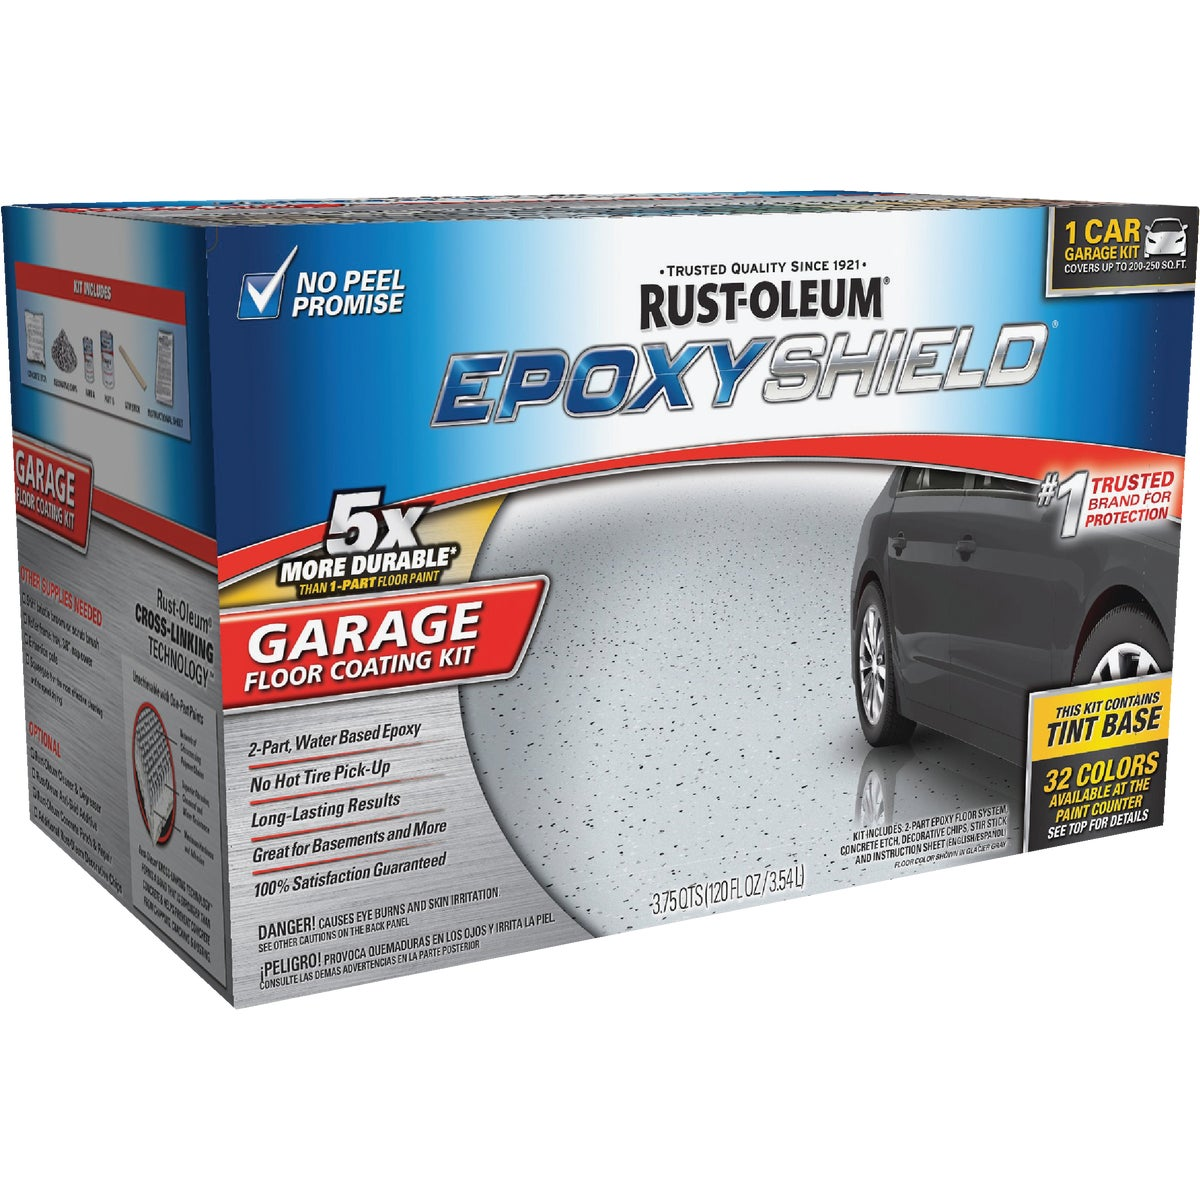 TINT BS GARAGE FLR EPOXY - 252625 by Rustoleum